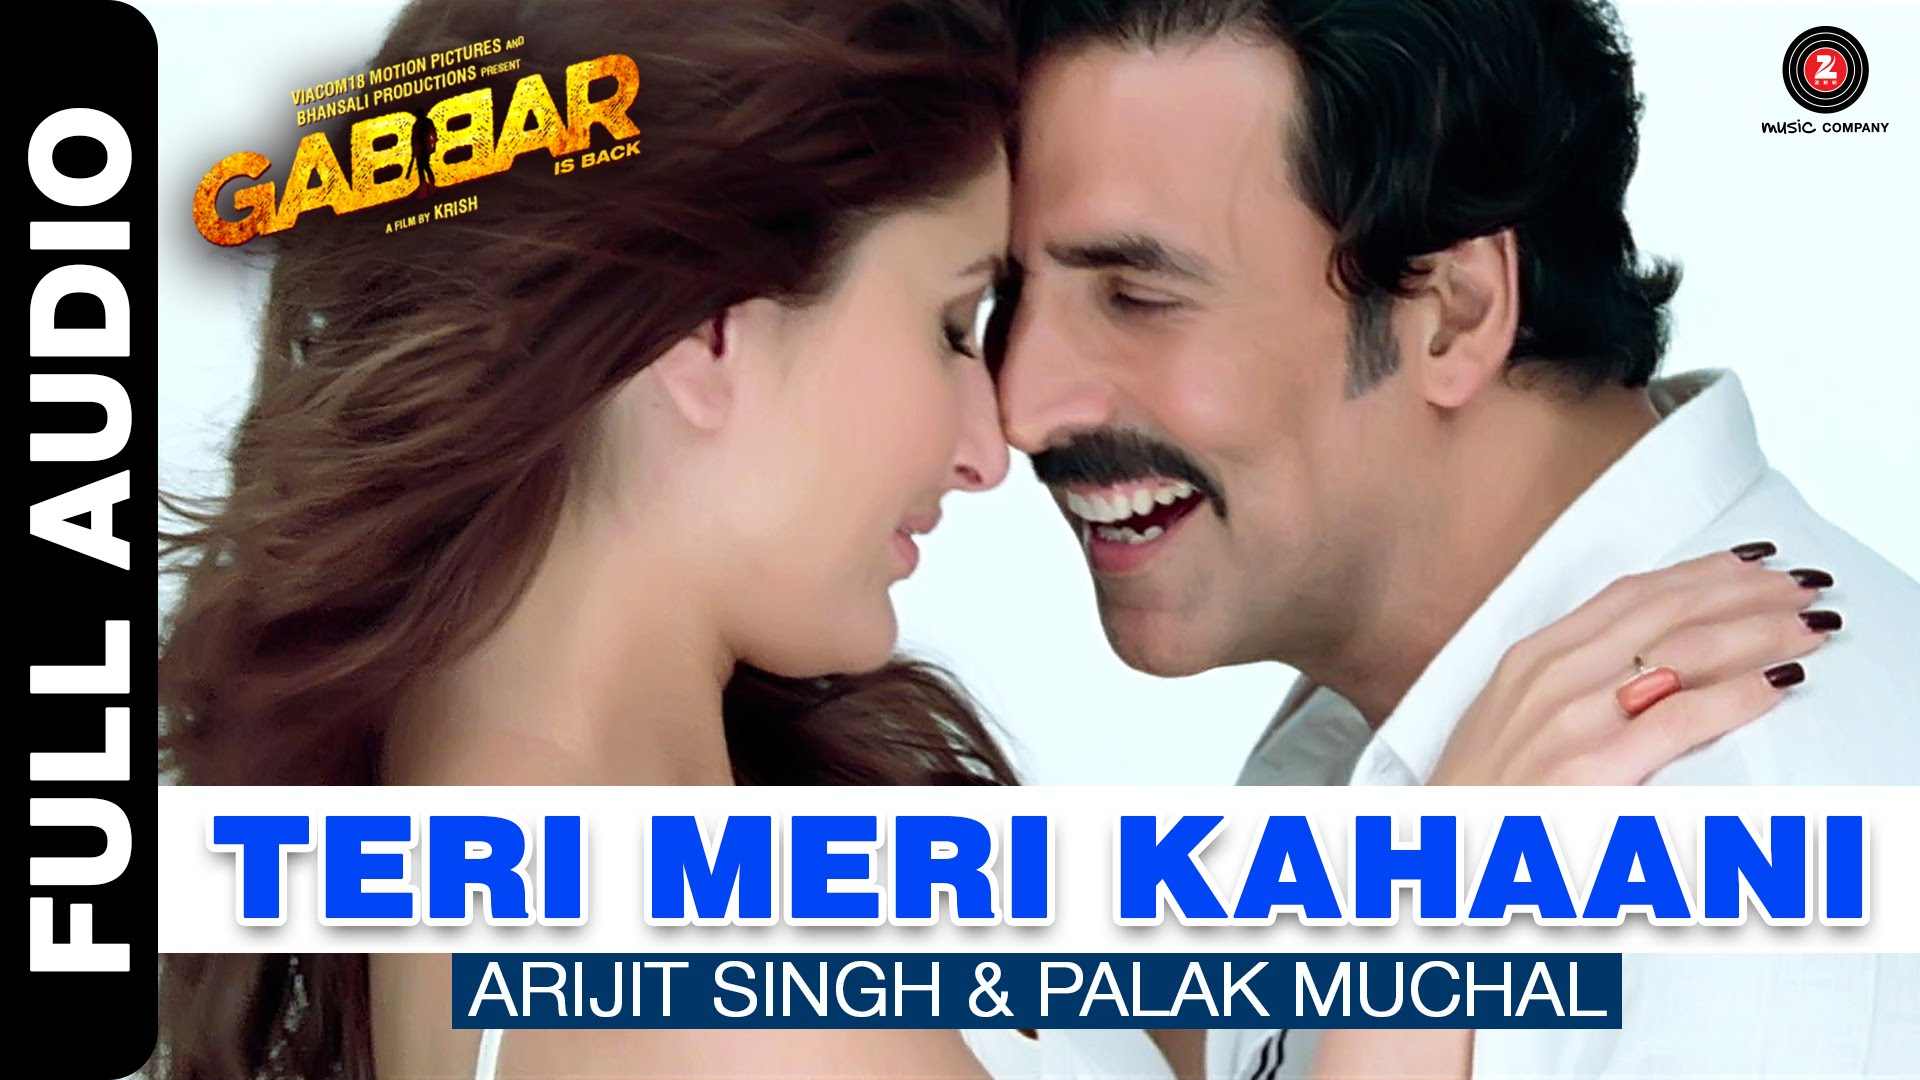 Teri meri kahaani wallpapers, photos & images in hd.